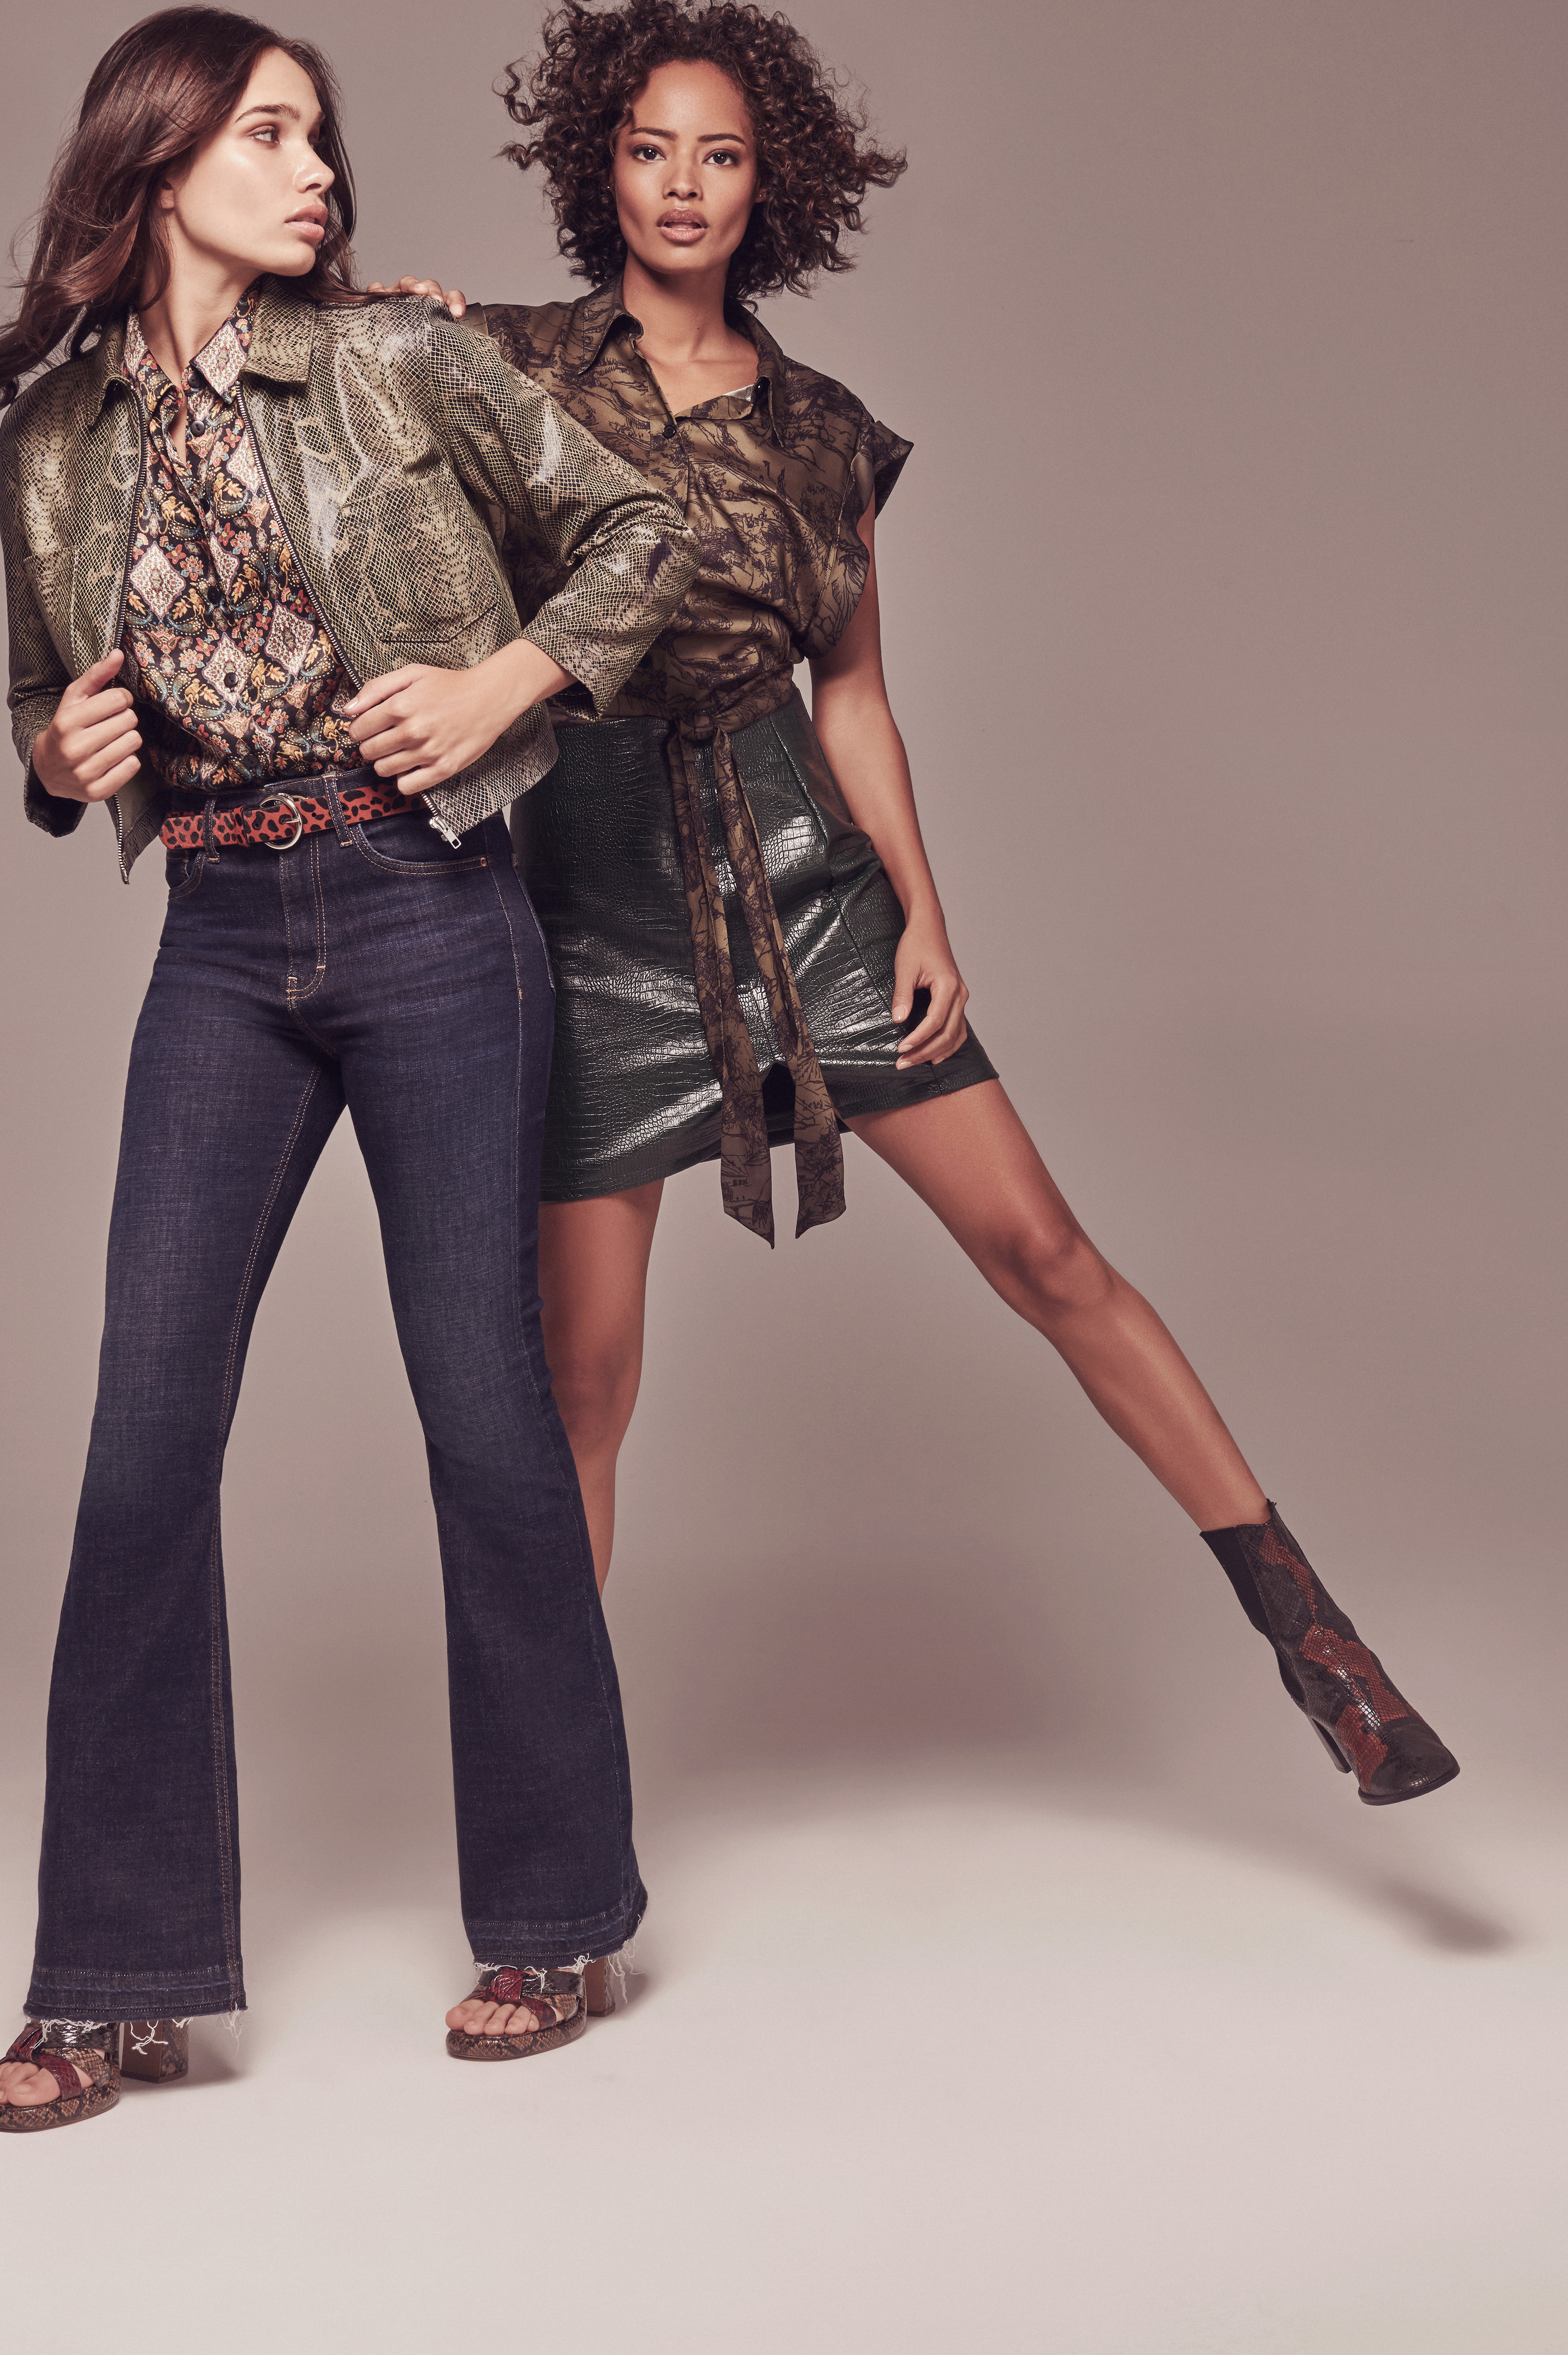 Very Topshop campaign